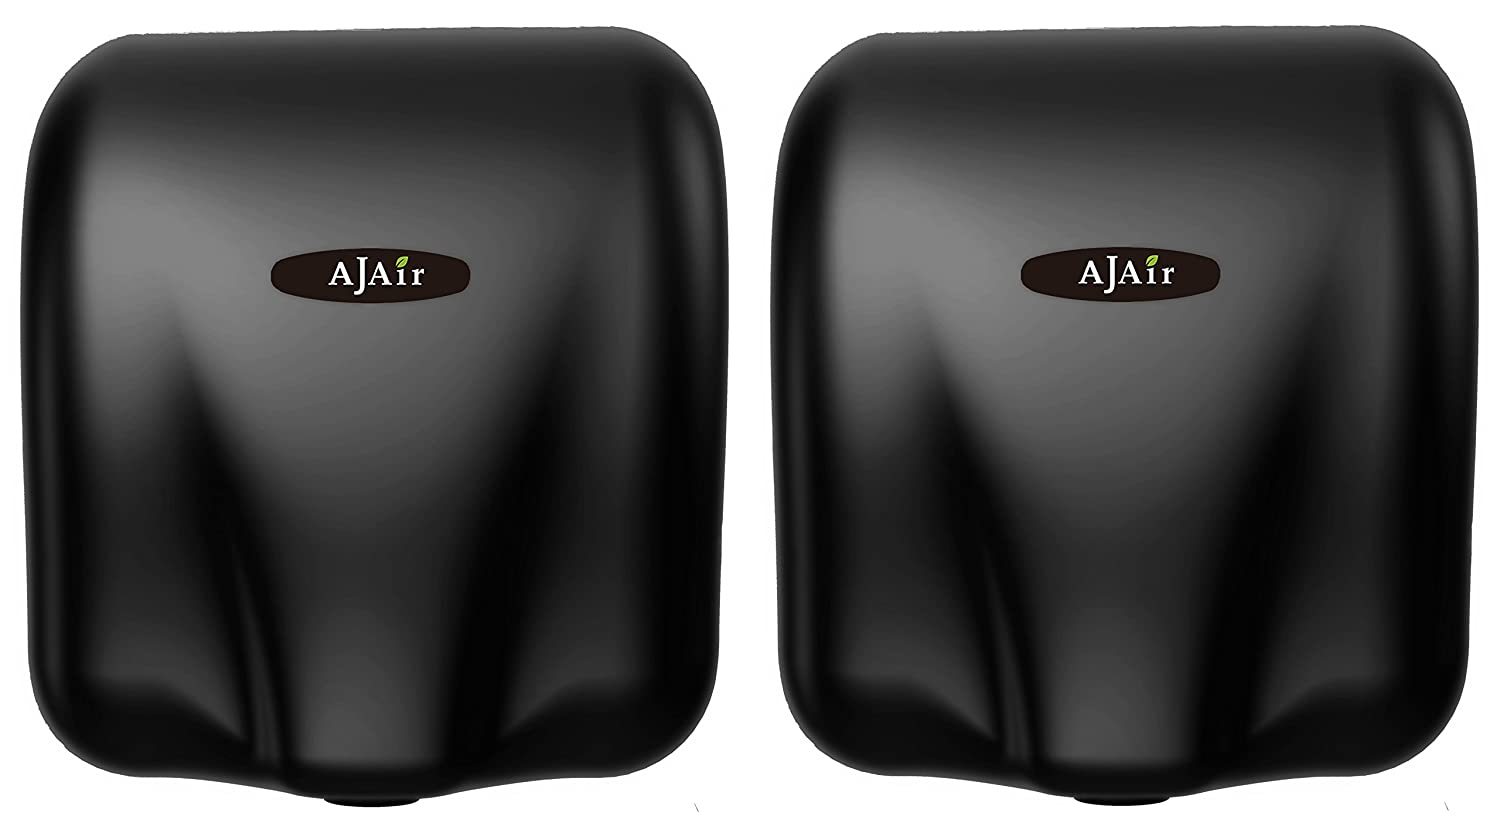 AjAir (2 Pack Heavy Duty Commercial 1800 Watts High Speed Automatic Hot Hand Dryer (Black) Zhejiang AIKE